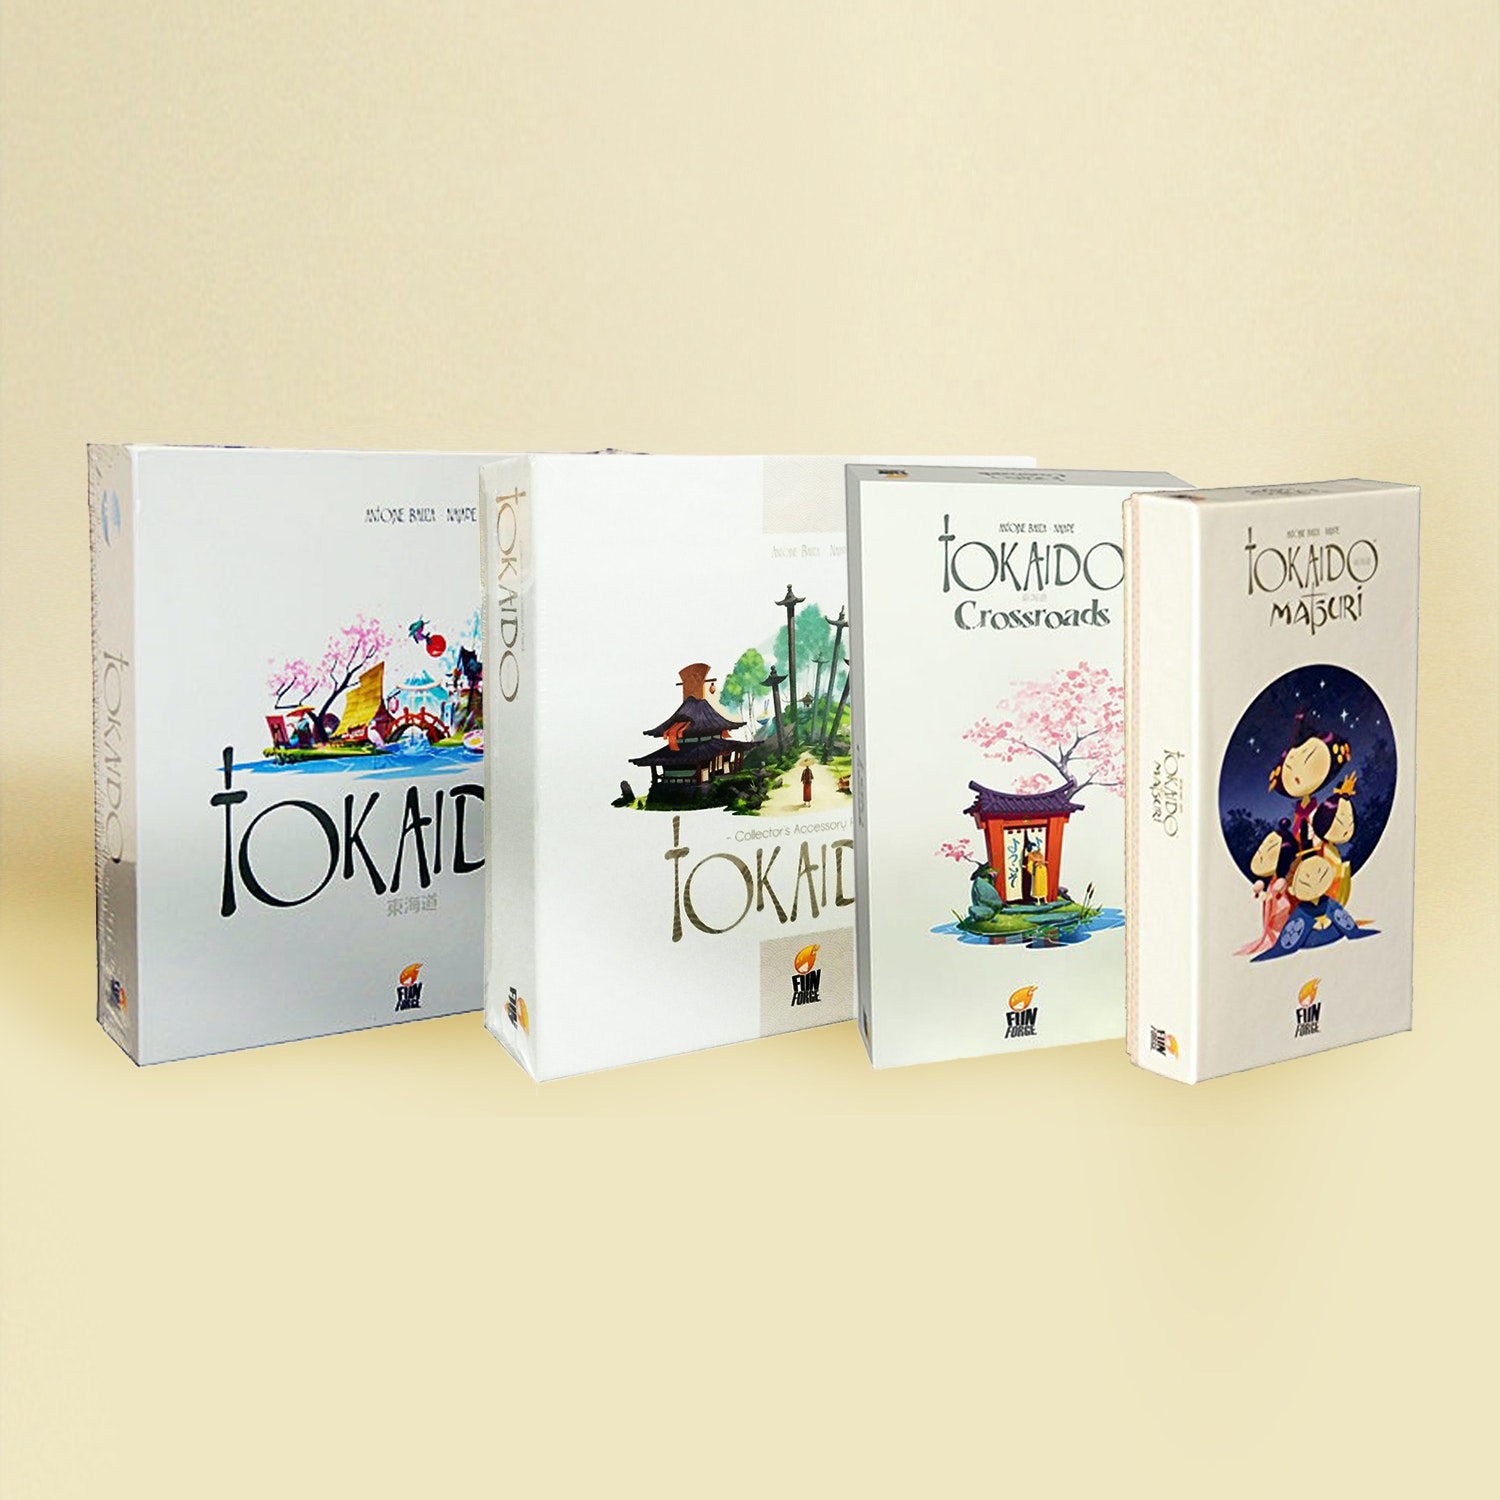 Tokaido Board Game & Expansions Bundle